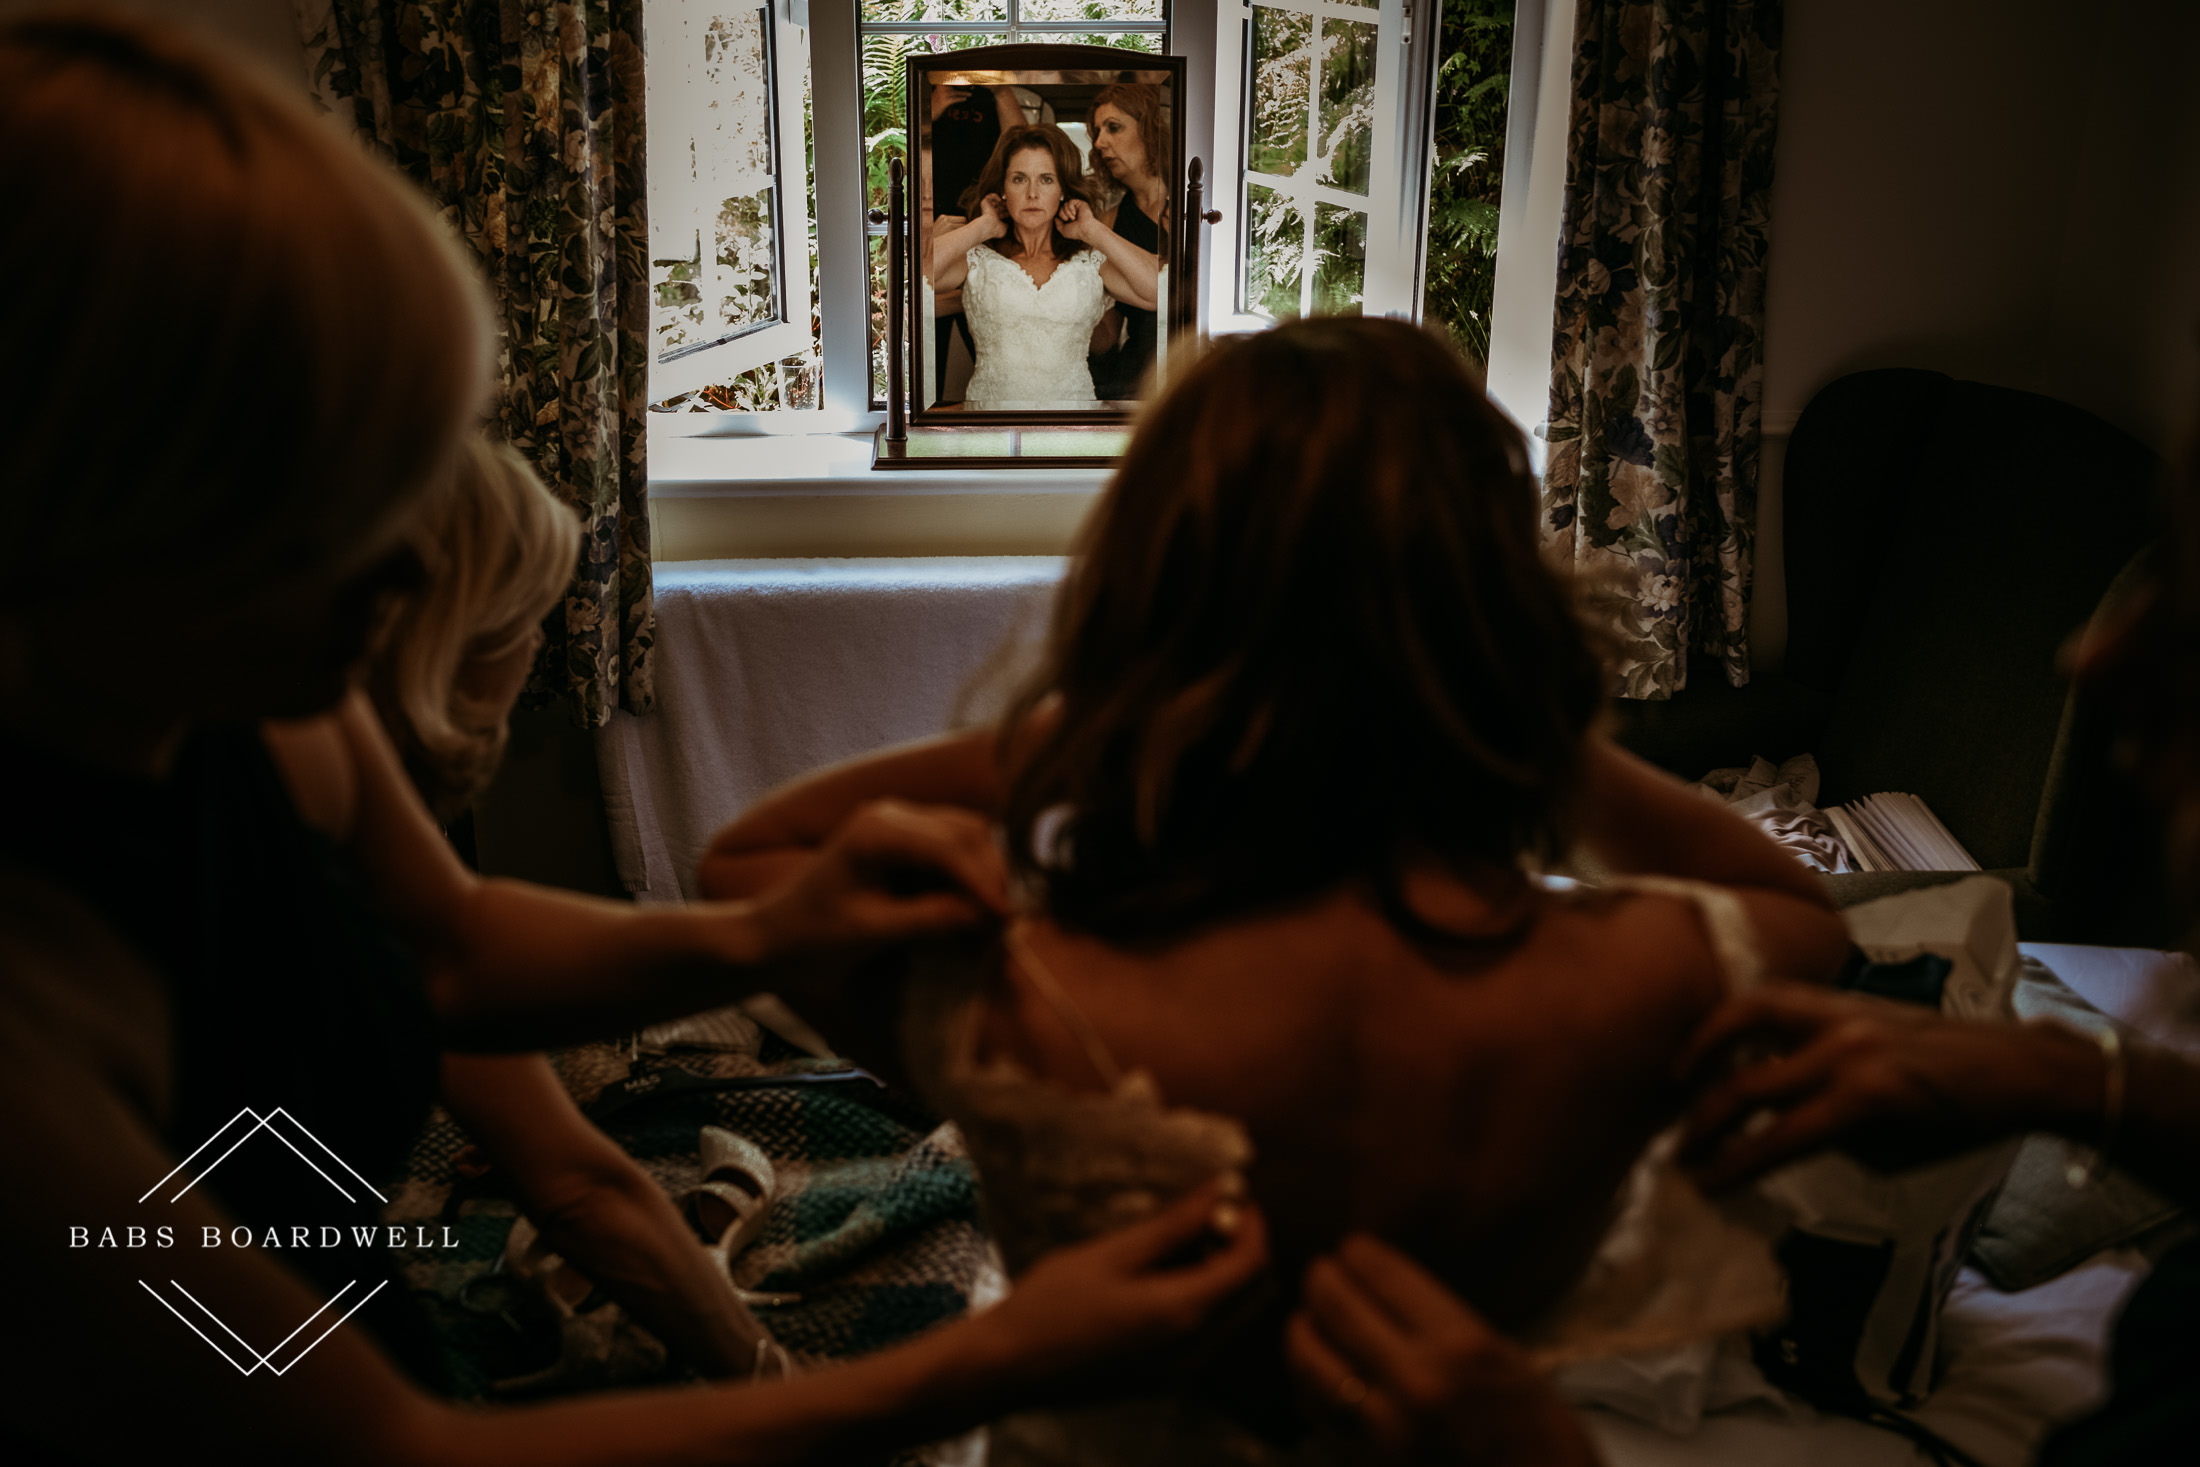 Wedding Photography Tips - how to make the most of bridal prep